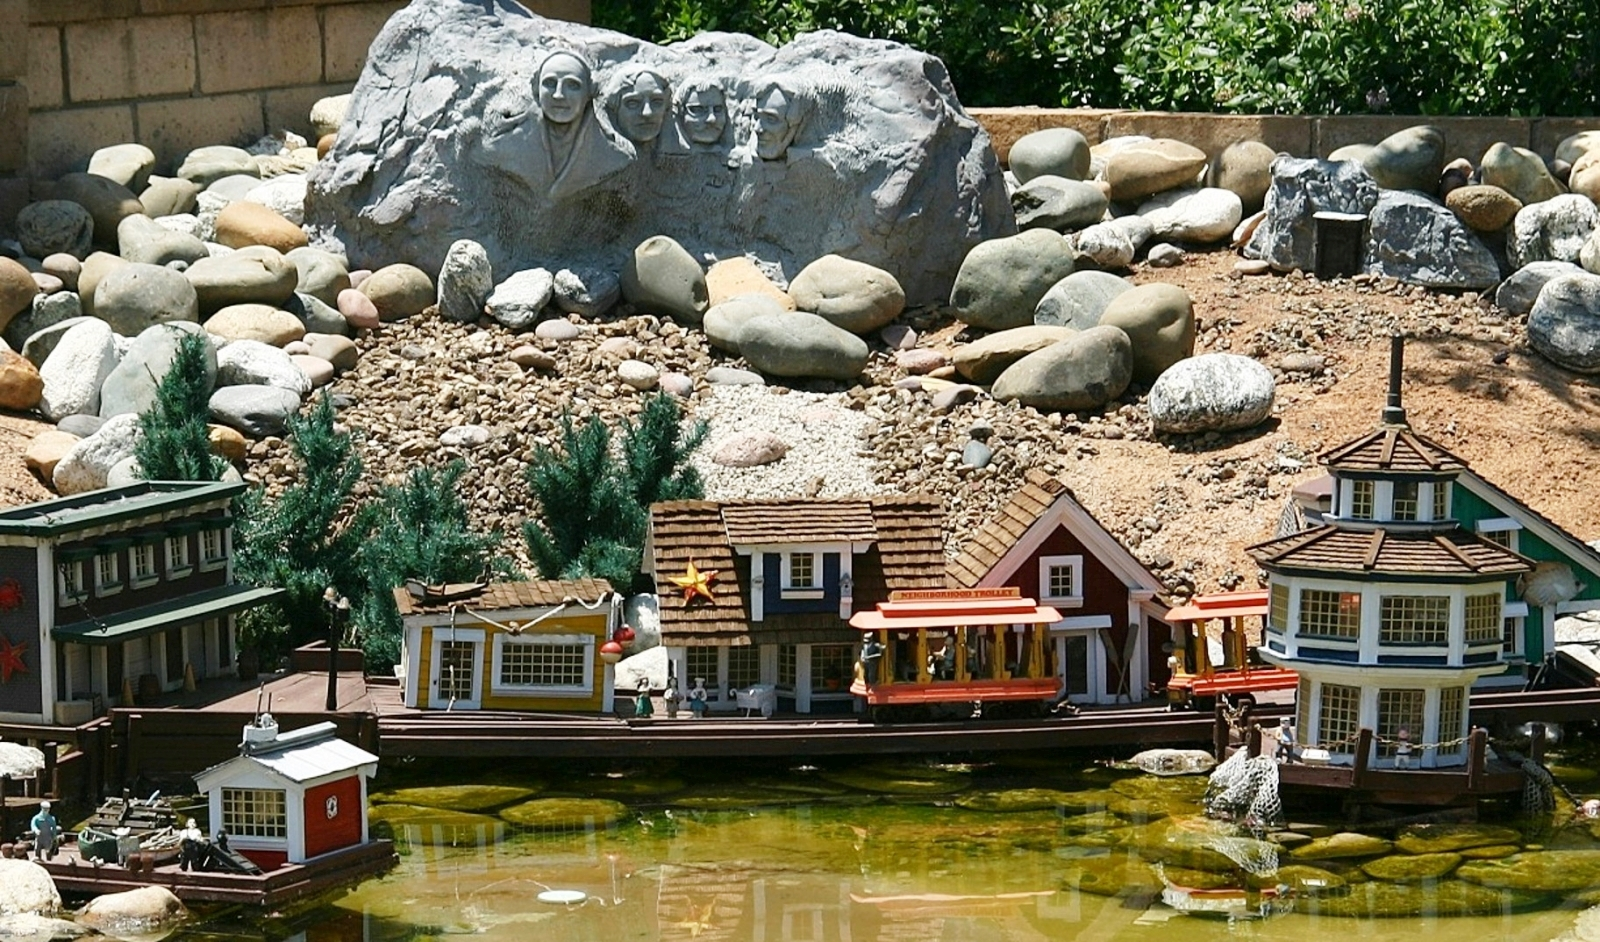 The faces of Mount Rushmore look down over a quaint and peaceful New England harbor town